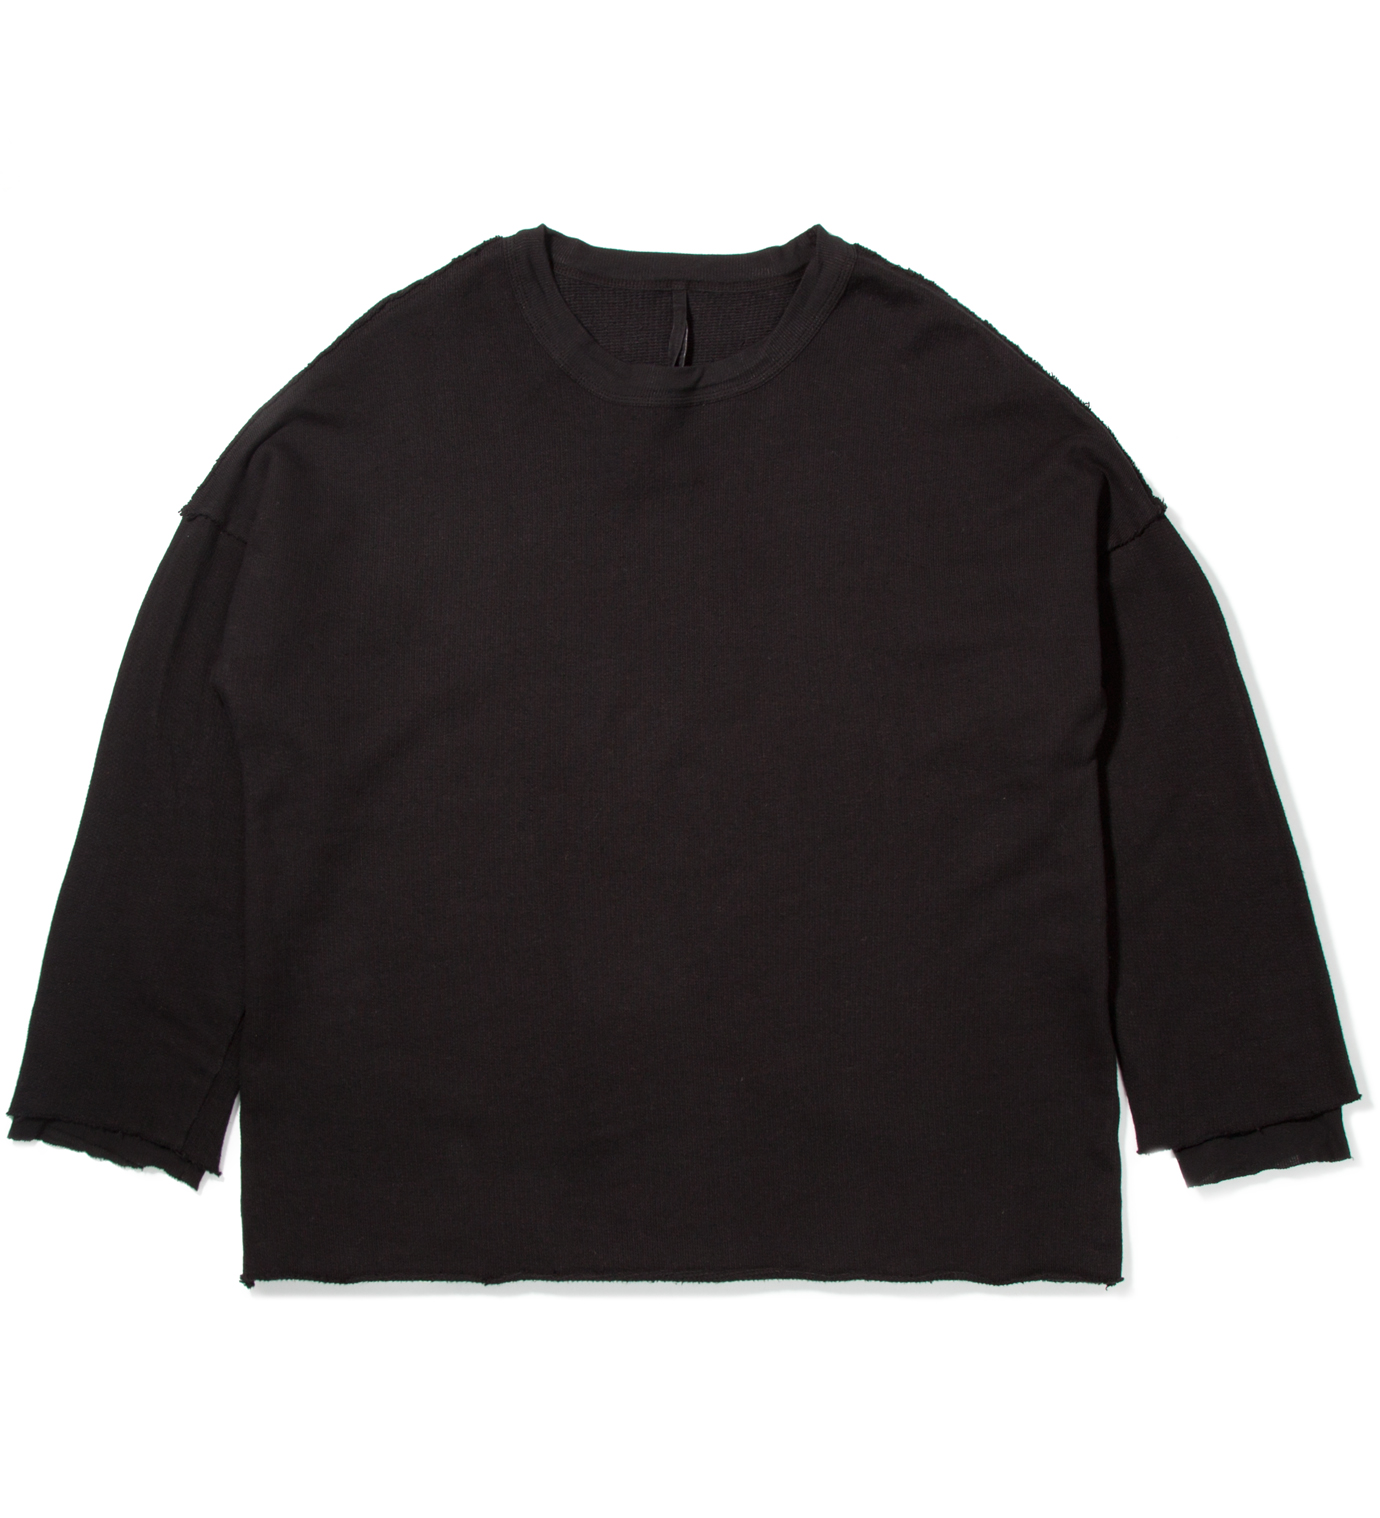 SILENT DAMIR DOMA Black Tian Cropped Sweater